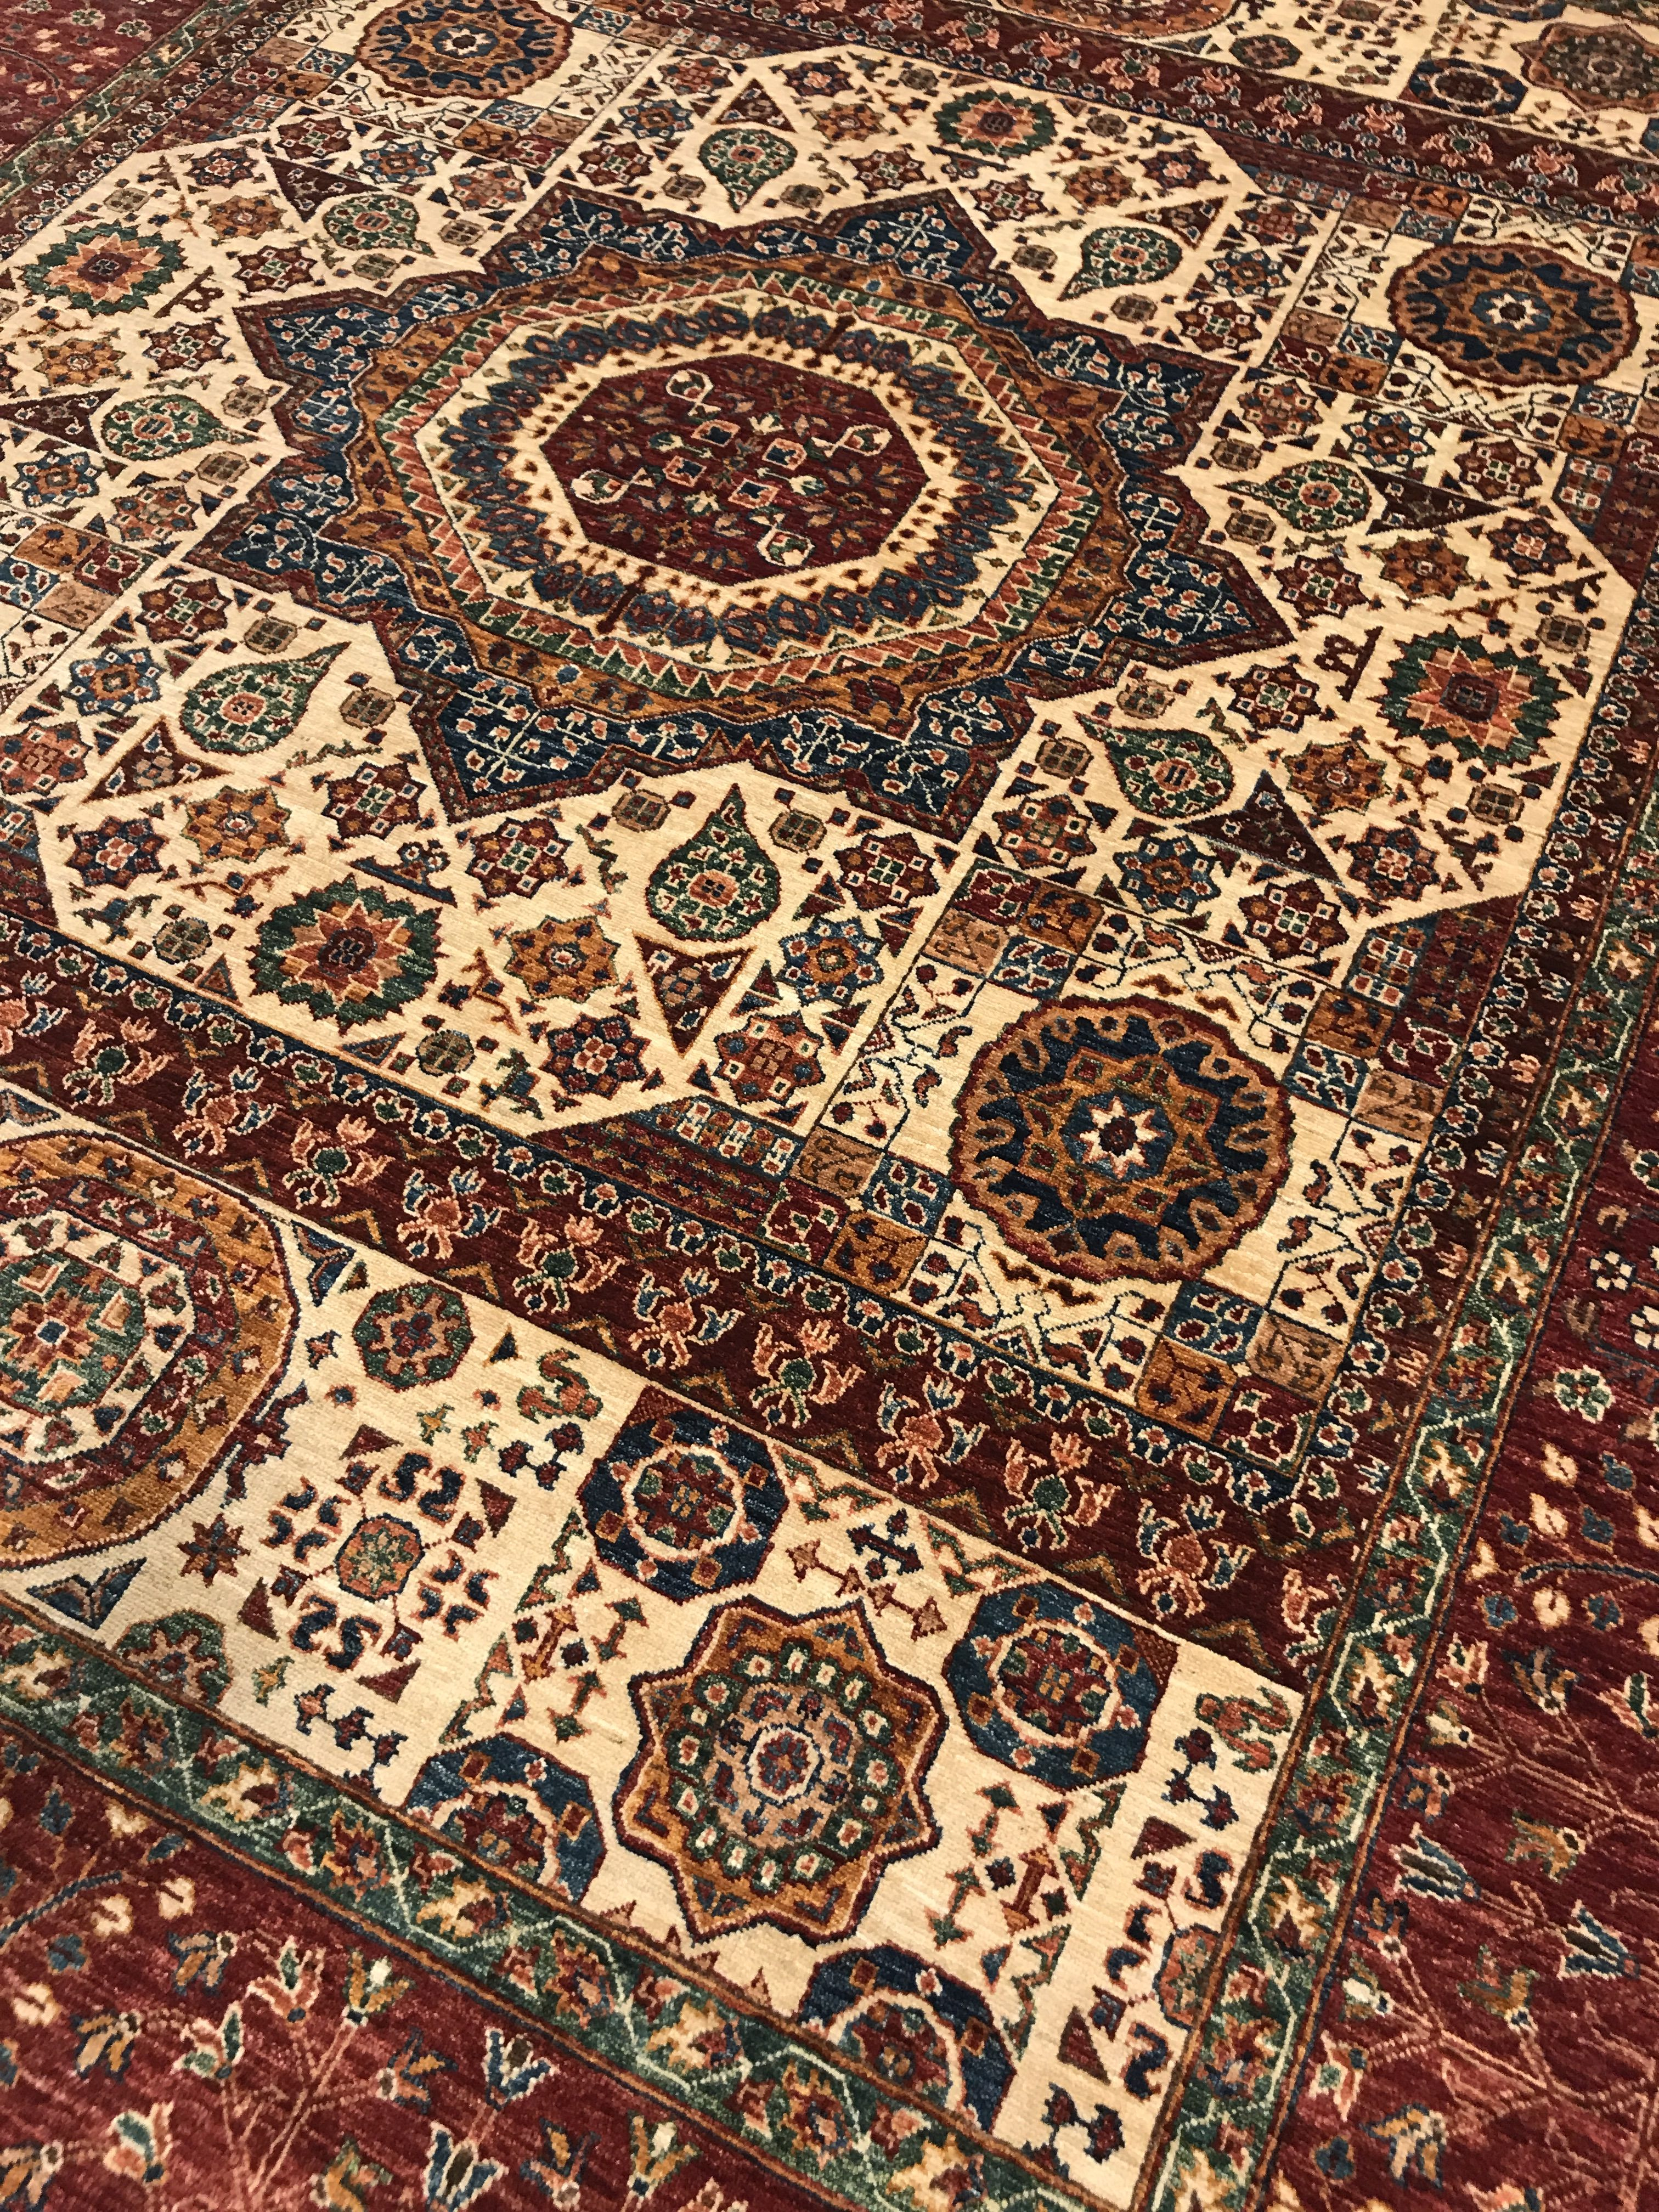 More Visit Us For Fine Handmade Carpets At Factory Outlet Prices Address